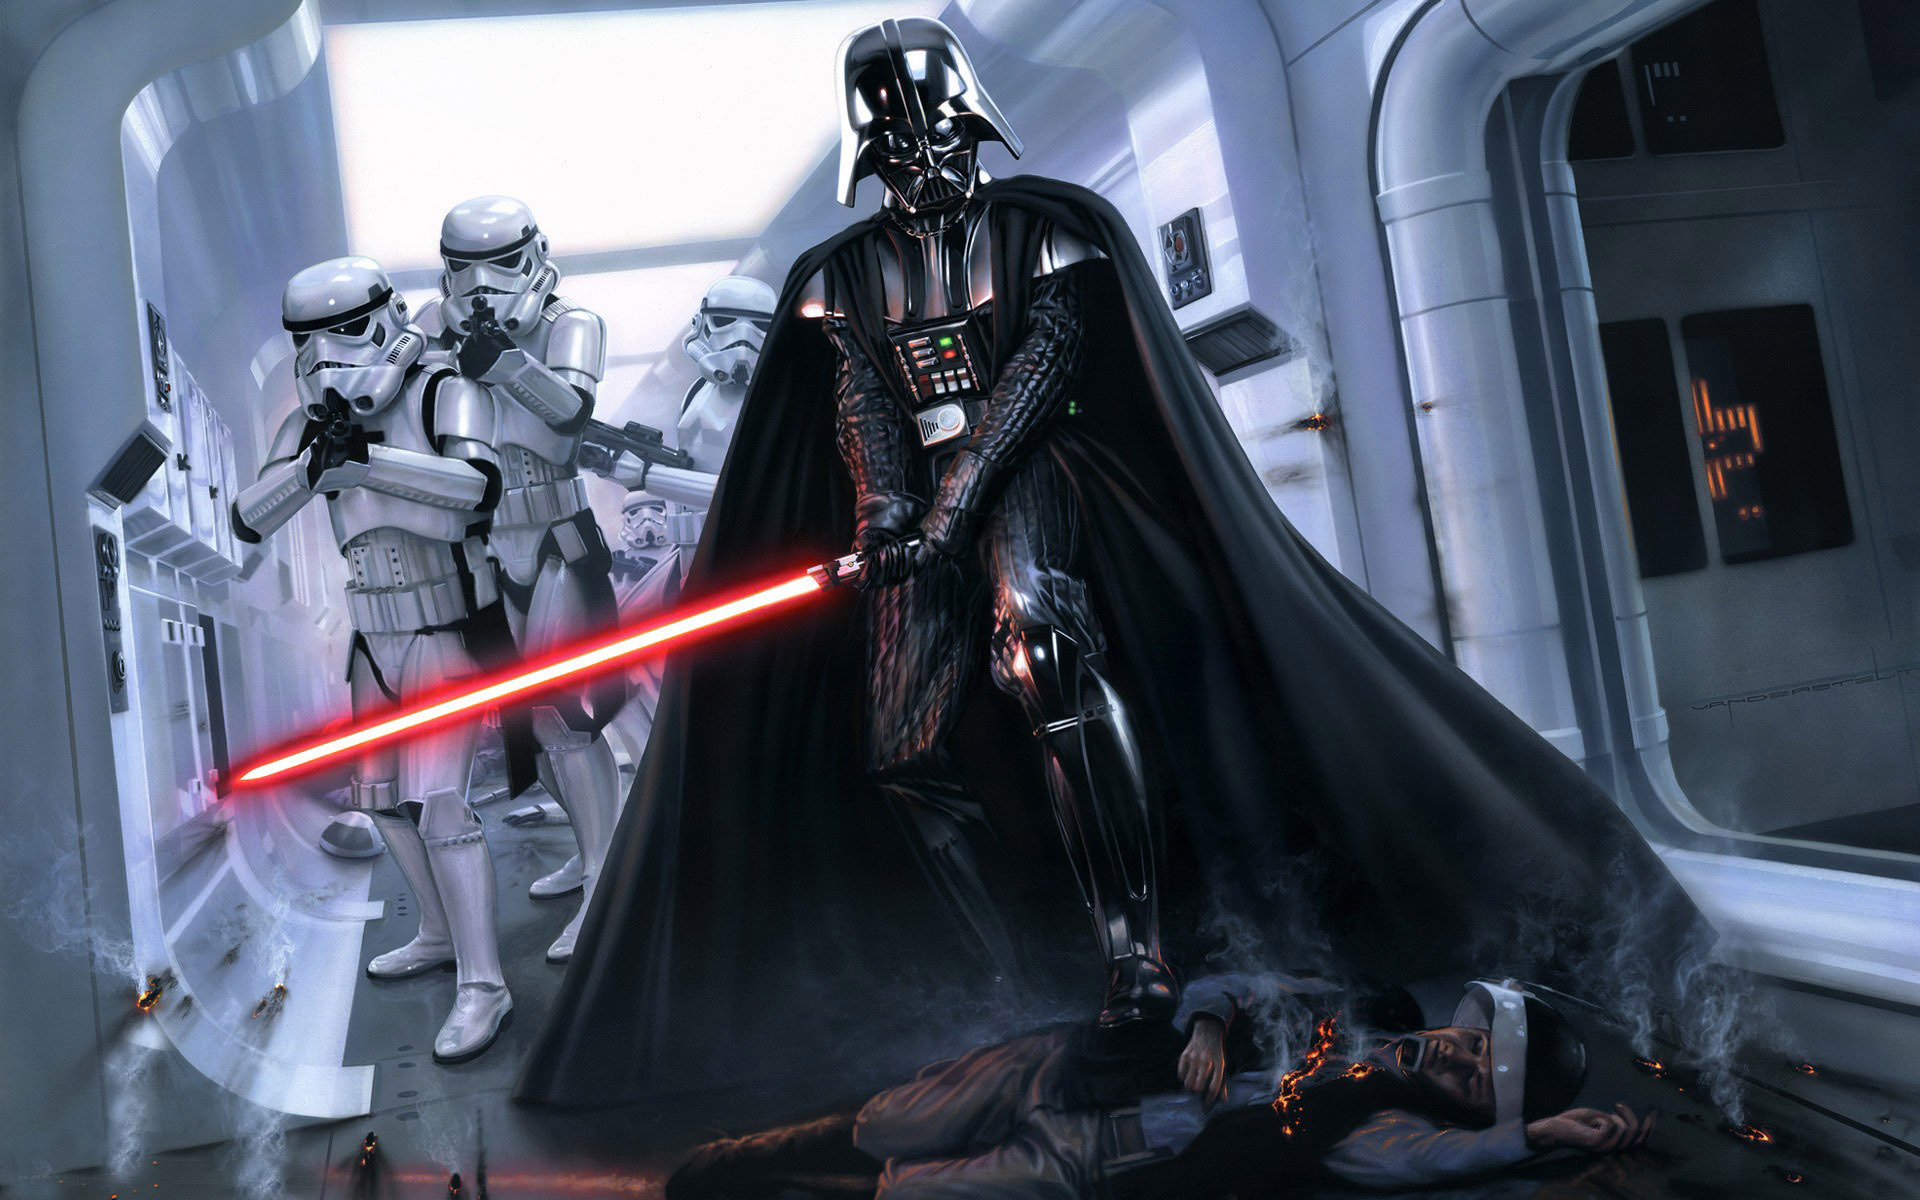 Darth Vader Star Wars Movie Hd Wallpaper 1920 1200 The Highlander